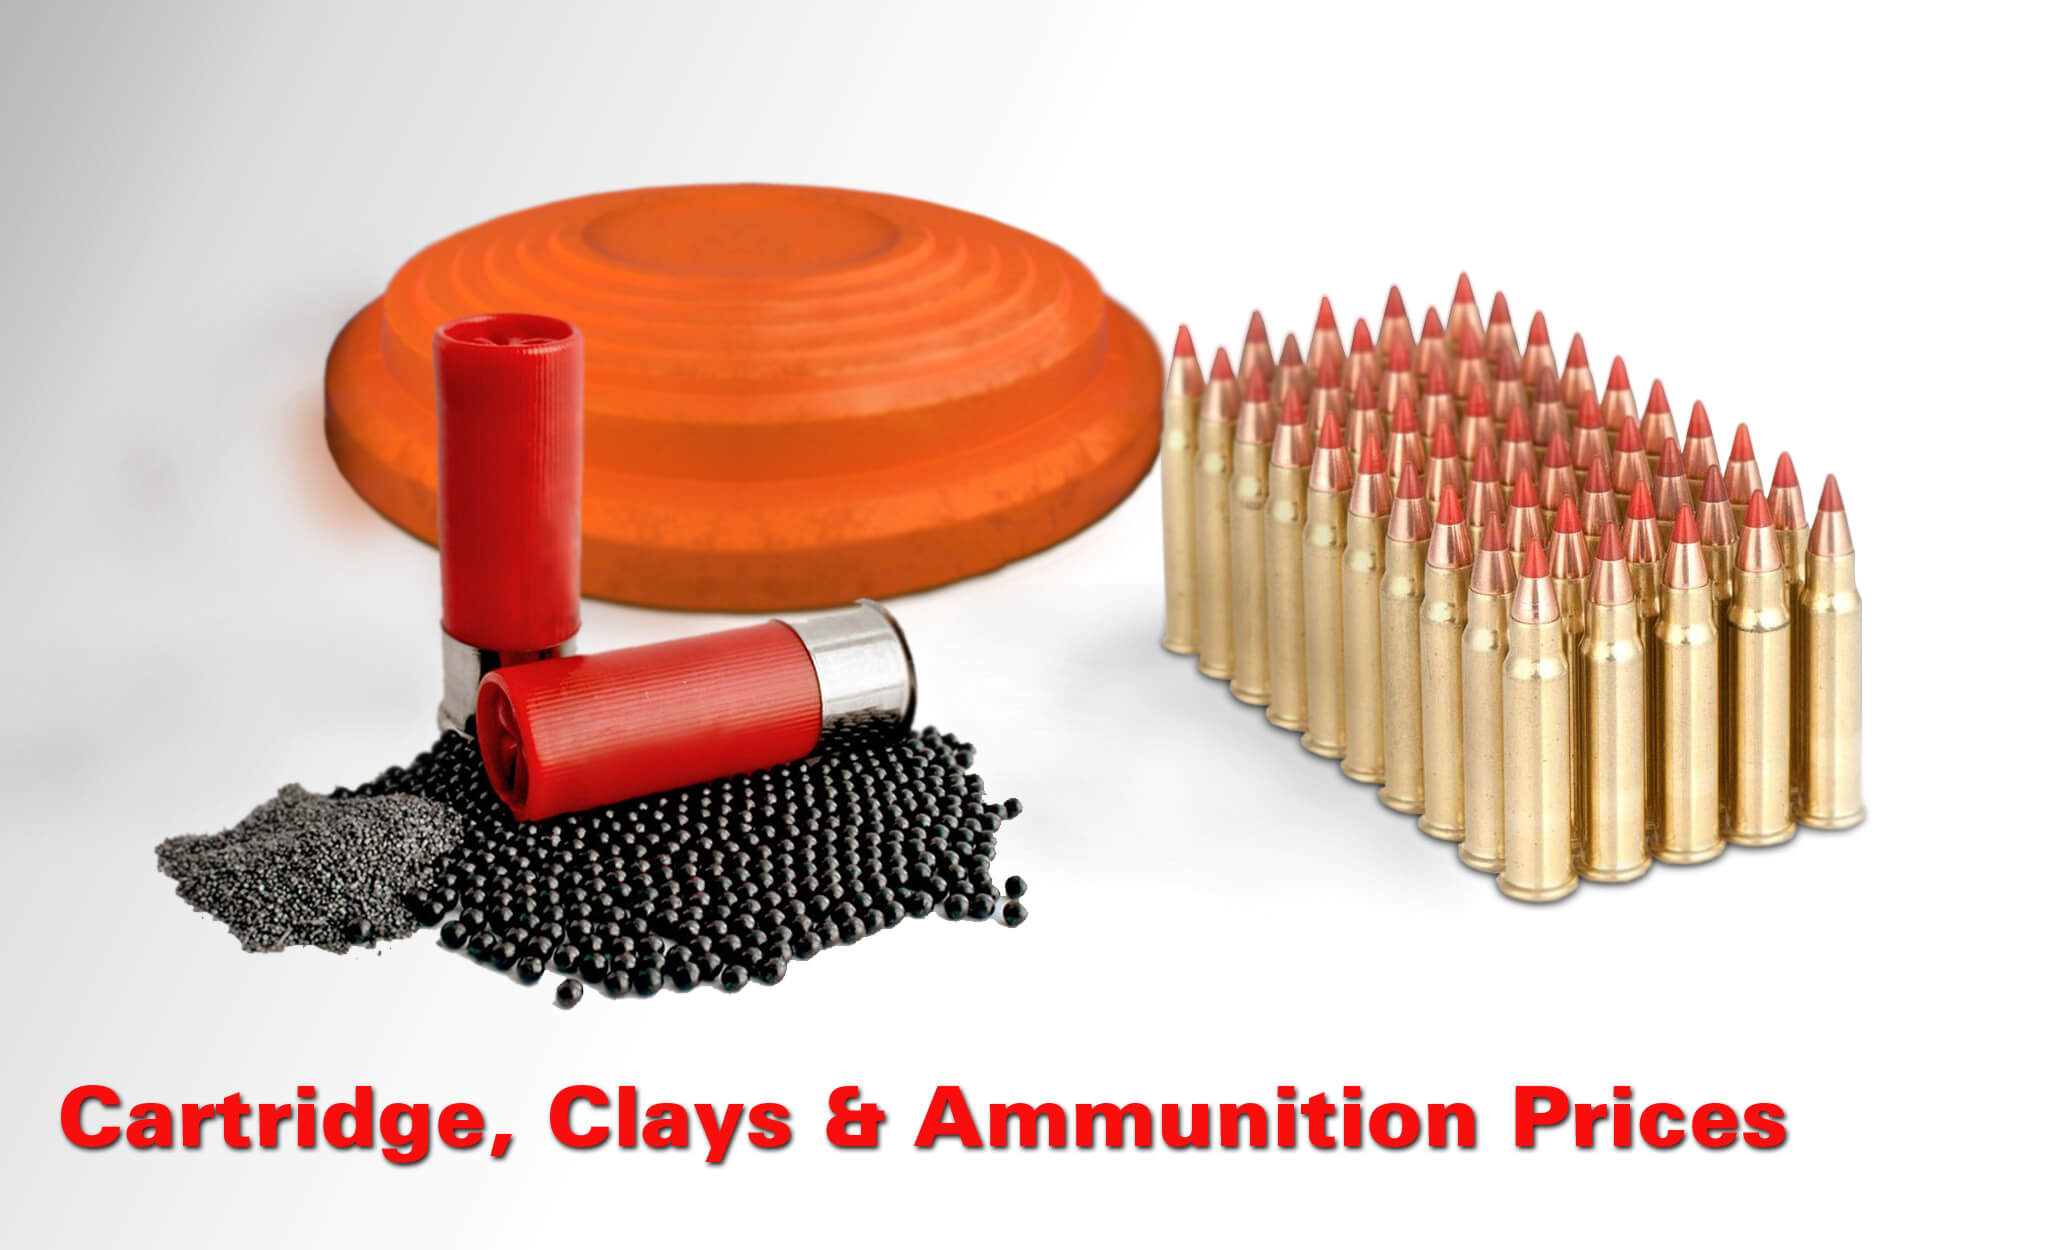 Cartridges,Clays, Ammunition